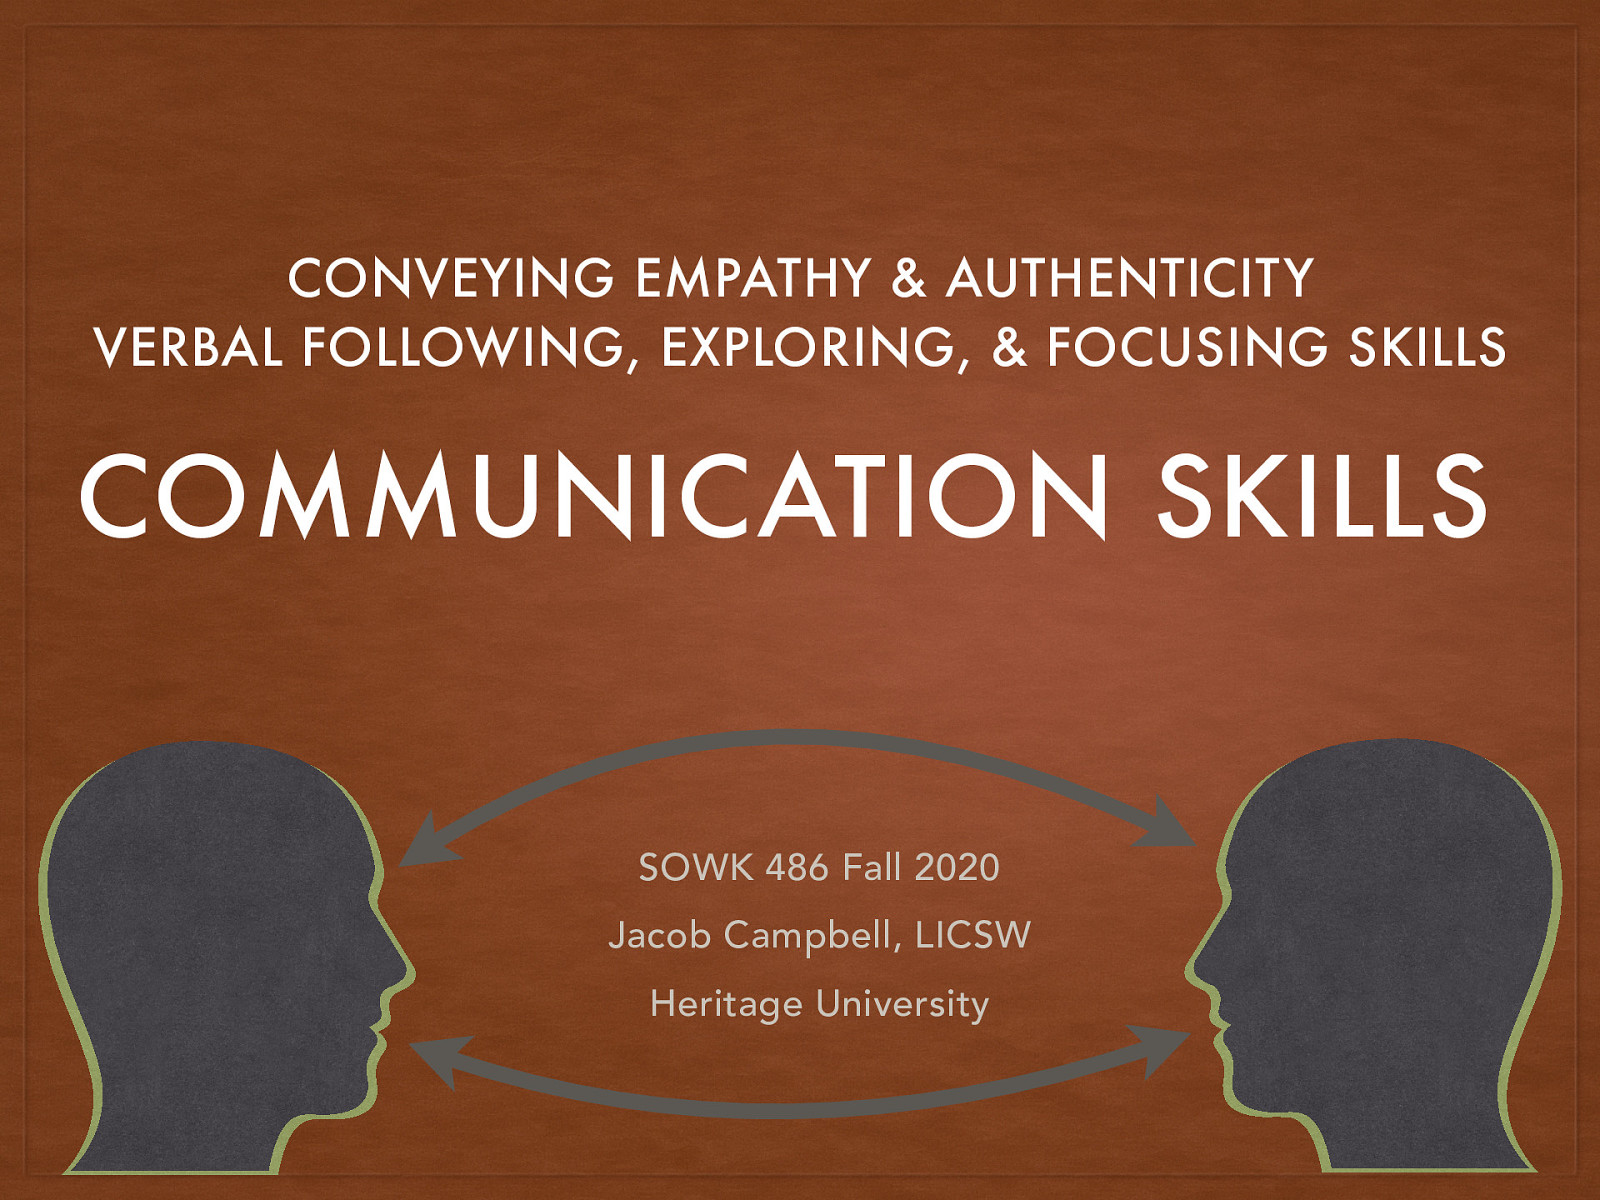 Week 06 - Communication Skills by Jacob Campbell